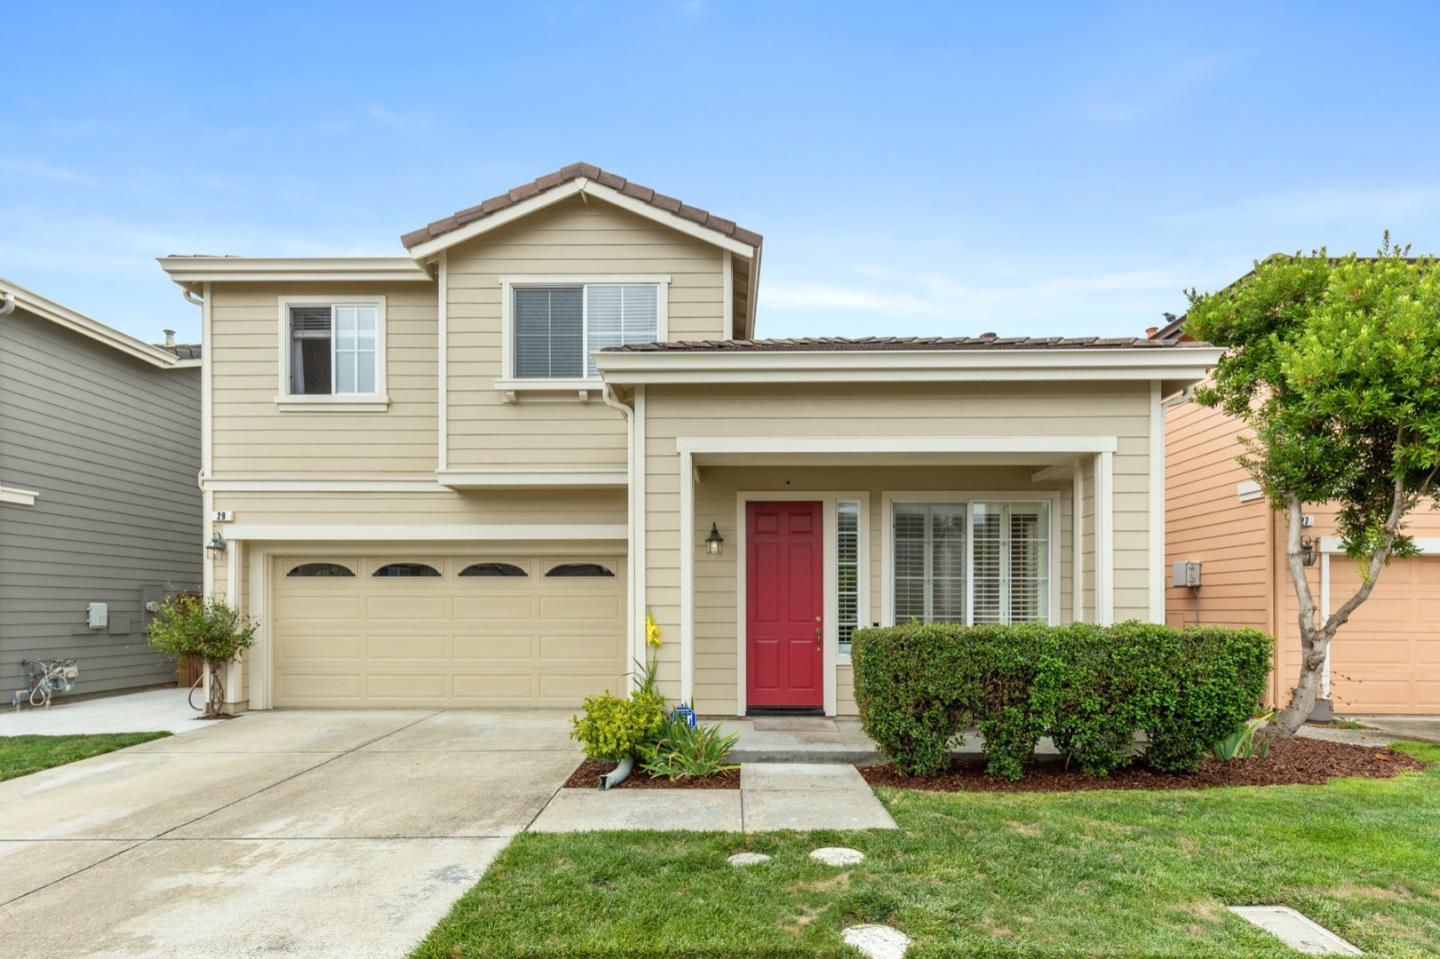 Detail Gallery Image 1 of 1 For 29 Idlewood Dr, South San Francisco,  CA 94080 - 4 Beds | 2/1 Baths